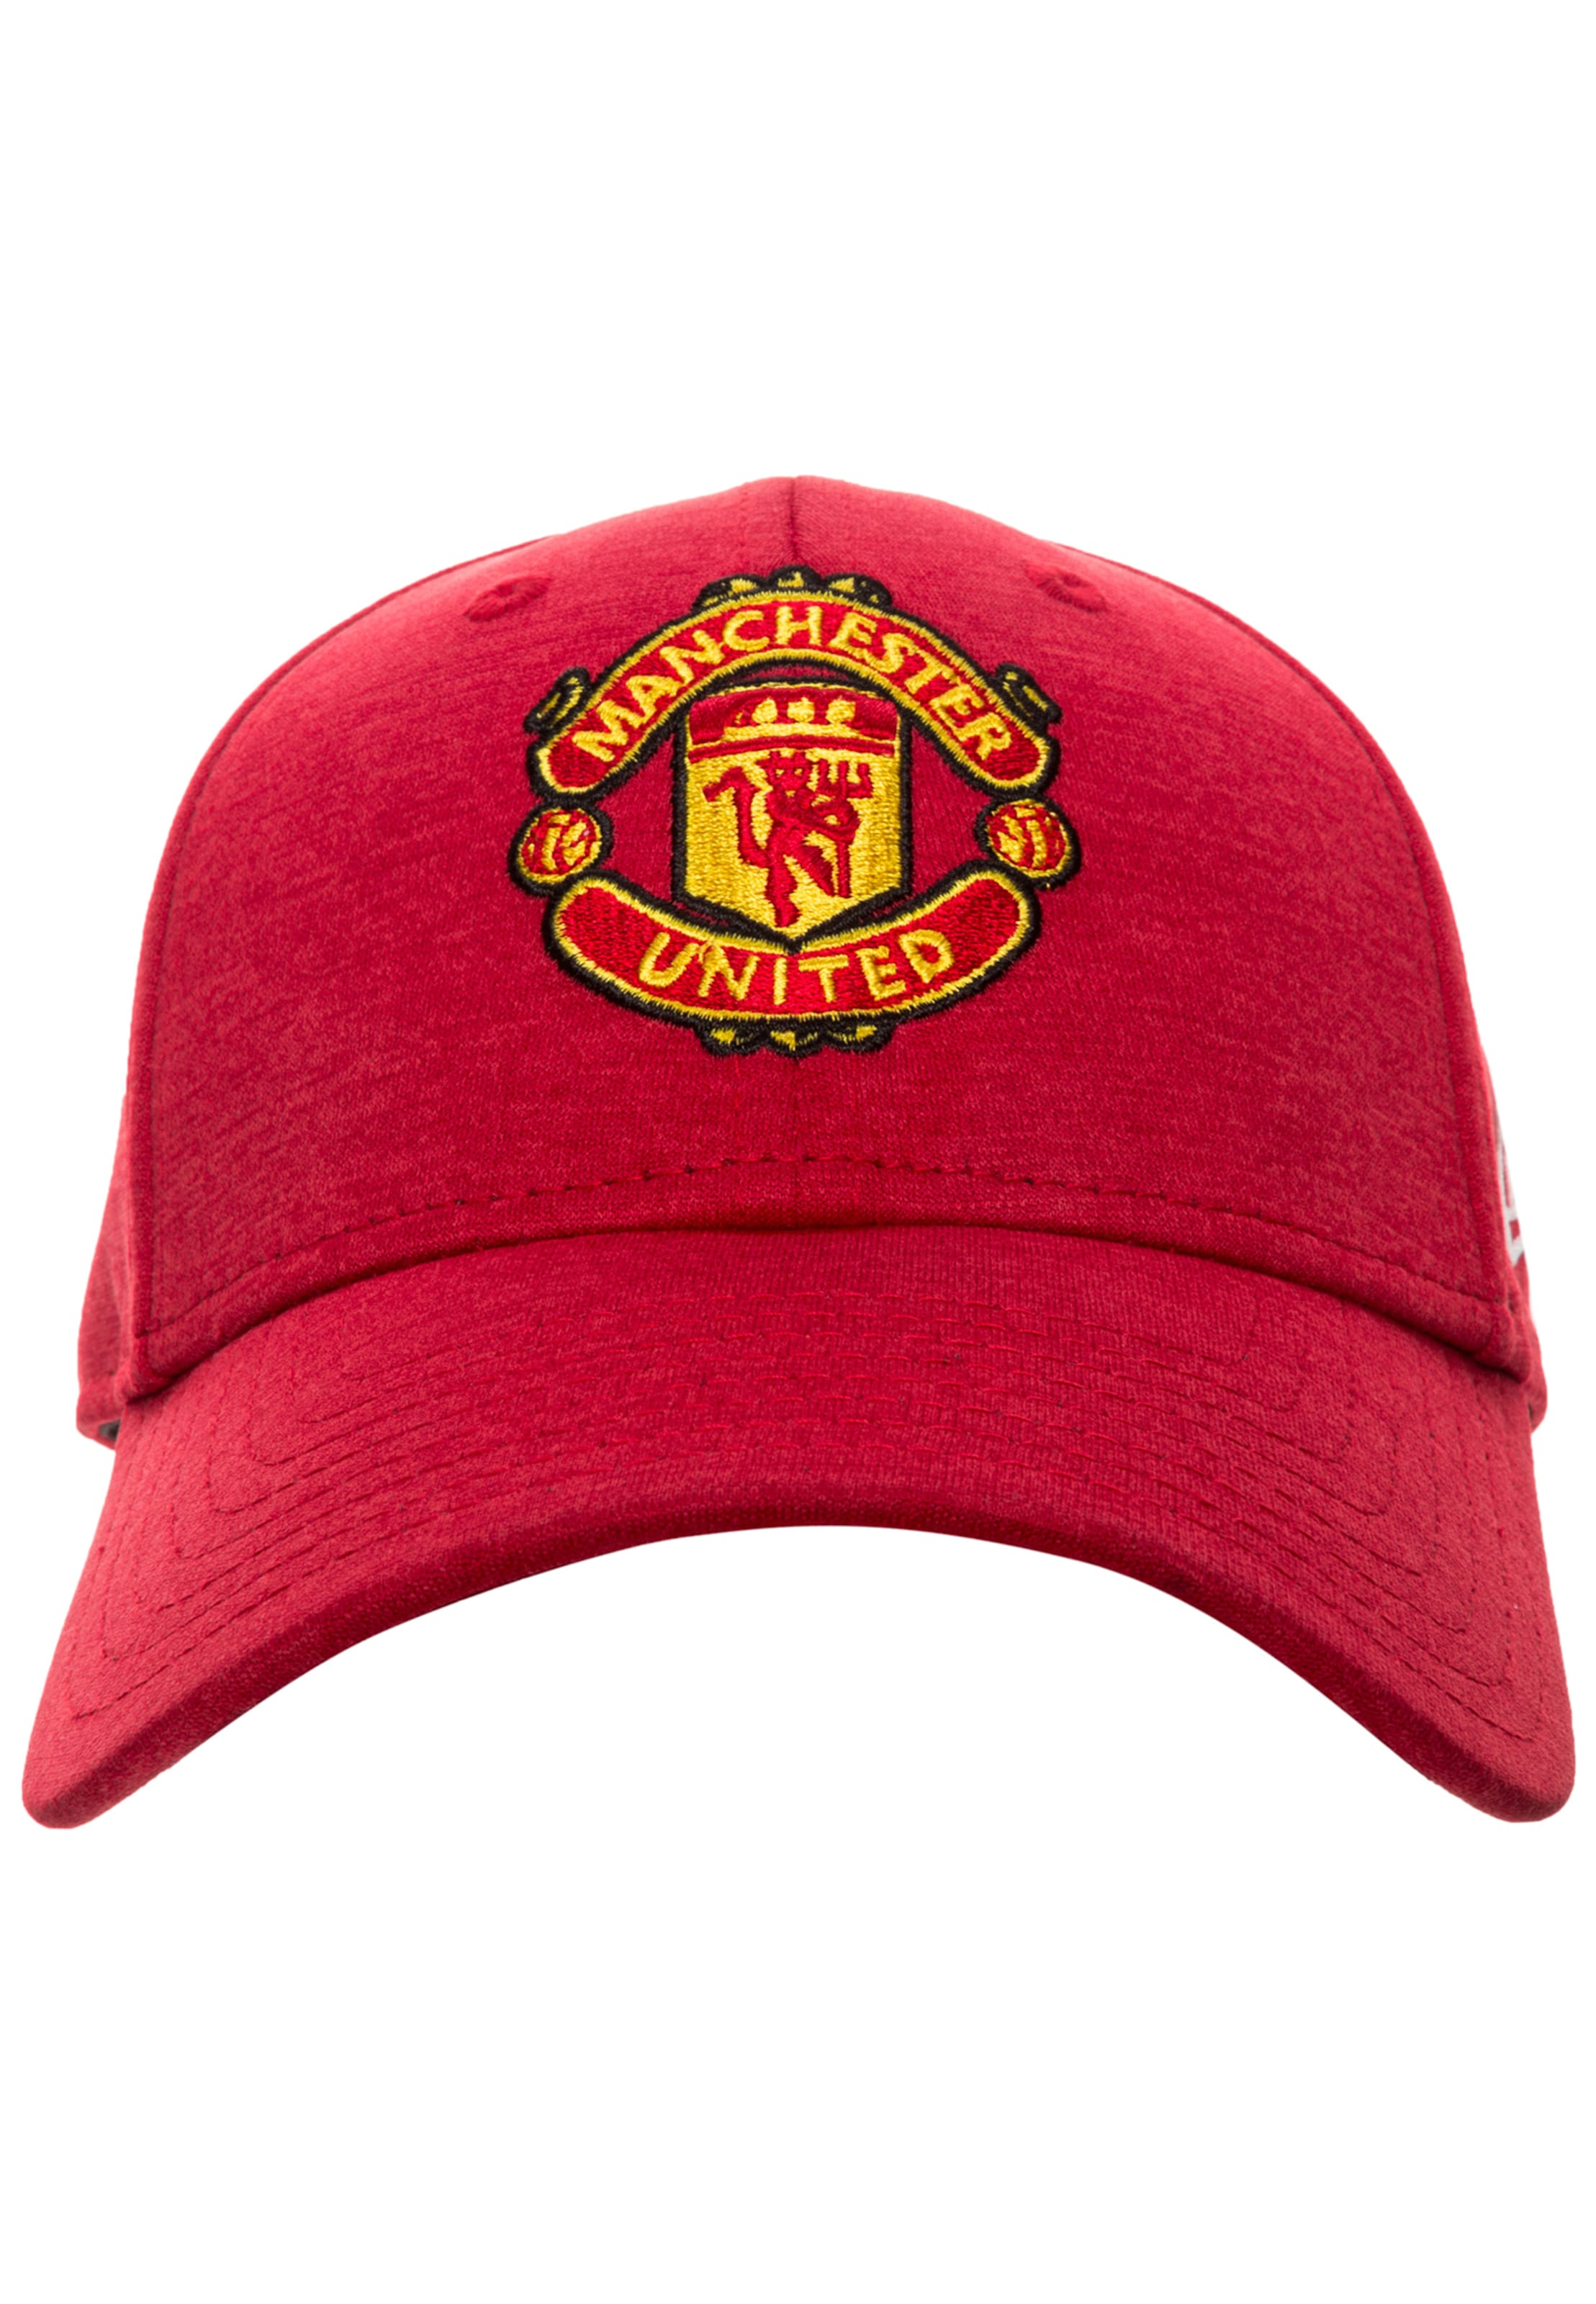 Manchester Shadow '9forty Era Cap United' New In Tech Rot nN8PwX0kOZ